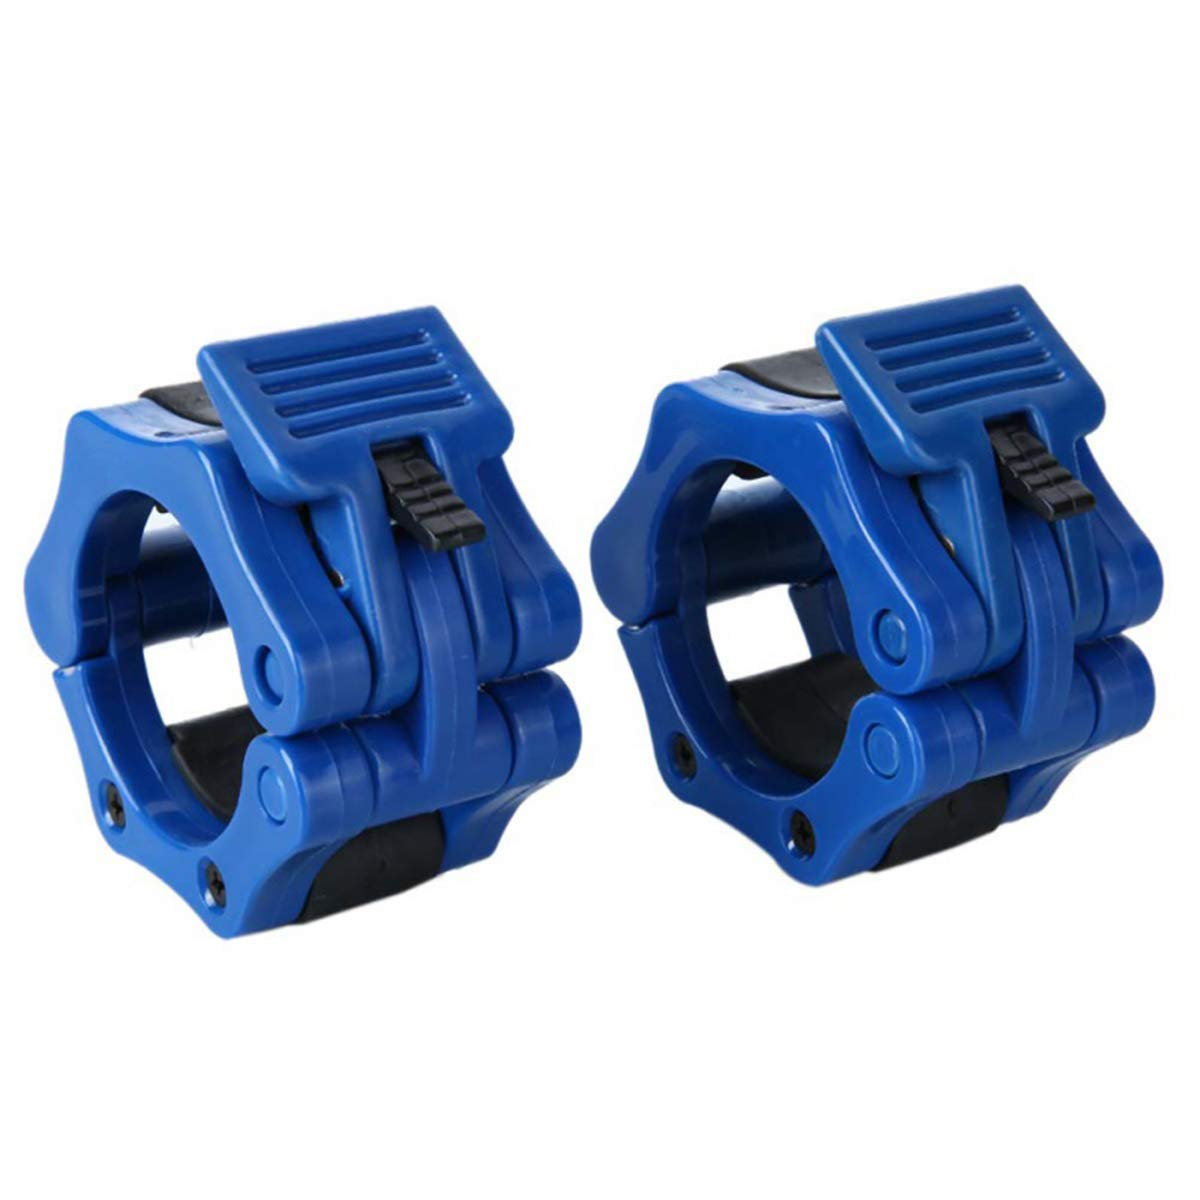 Queenbox 2pcs Barbell Clamp Collar Clips Clamp Gym Training 30mm, Deep Blue